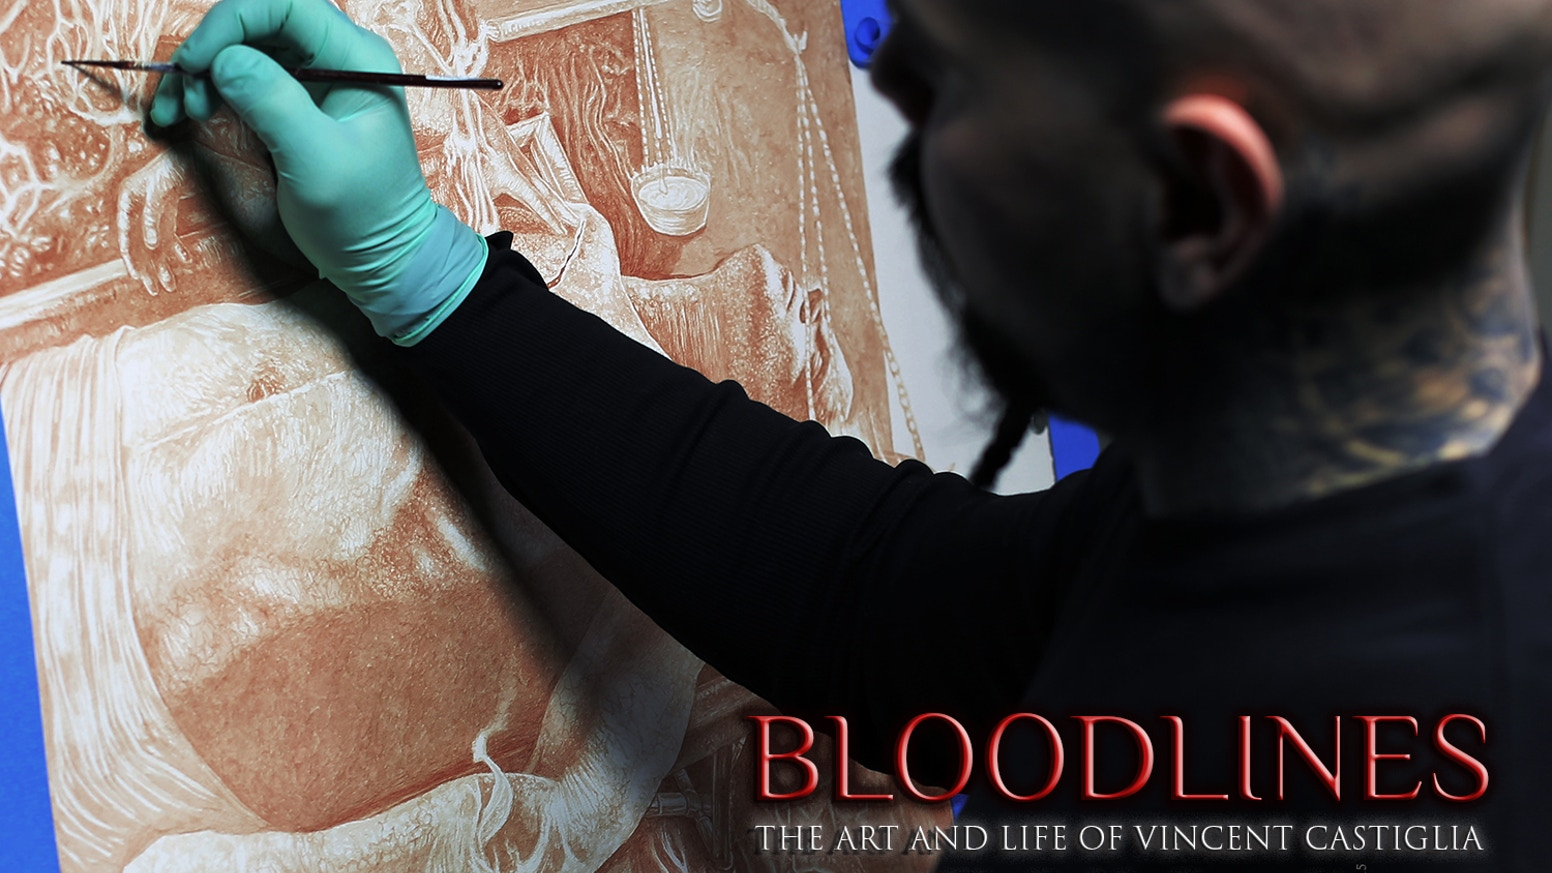 Bloodlines: The Art and Life of Vincent Castiglia is a feature documentary film produced and directed by award-winning filmmaker John Borowski. Vincent's work is singularly unique.  For over a decade, he has painted exclusively in his own blood.